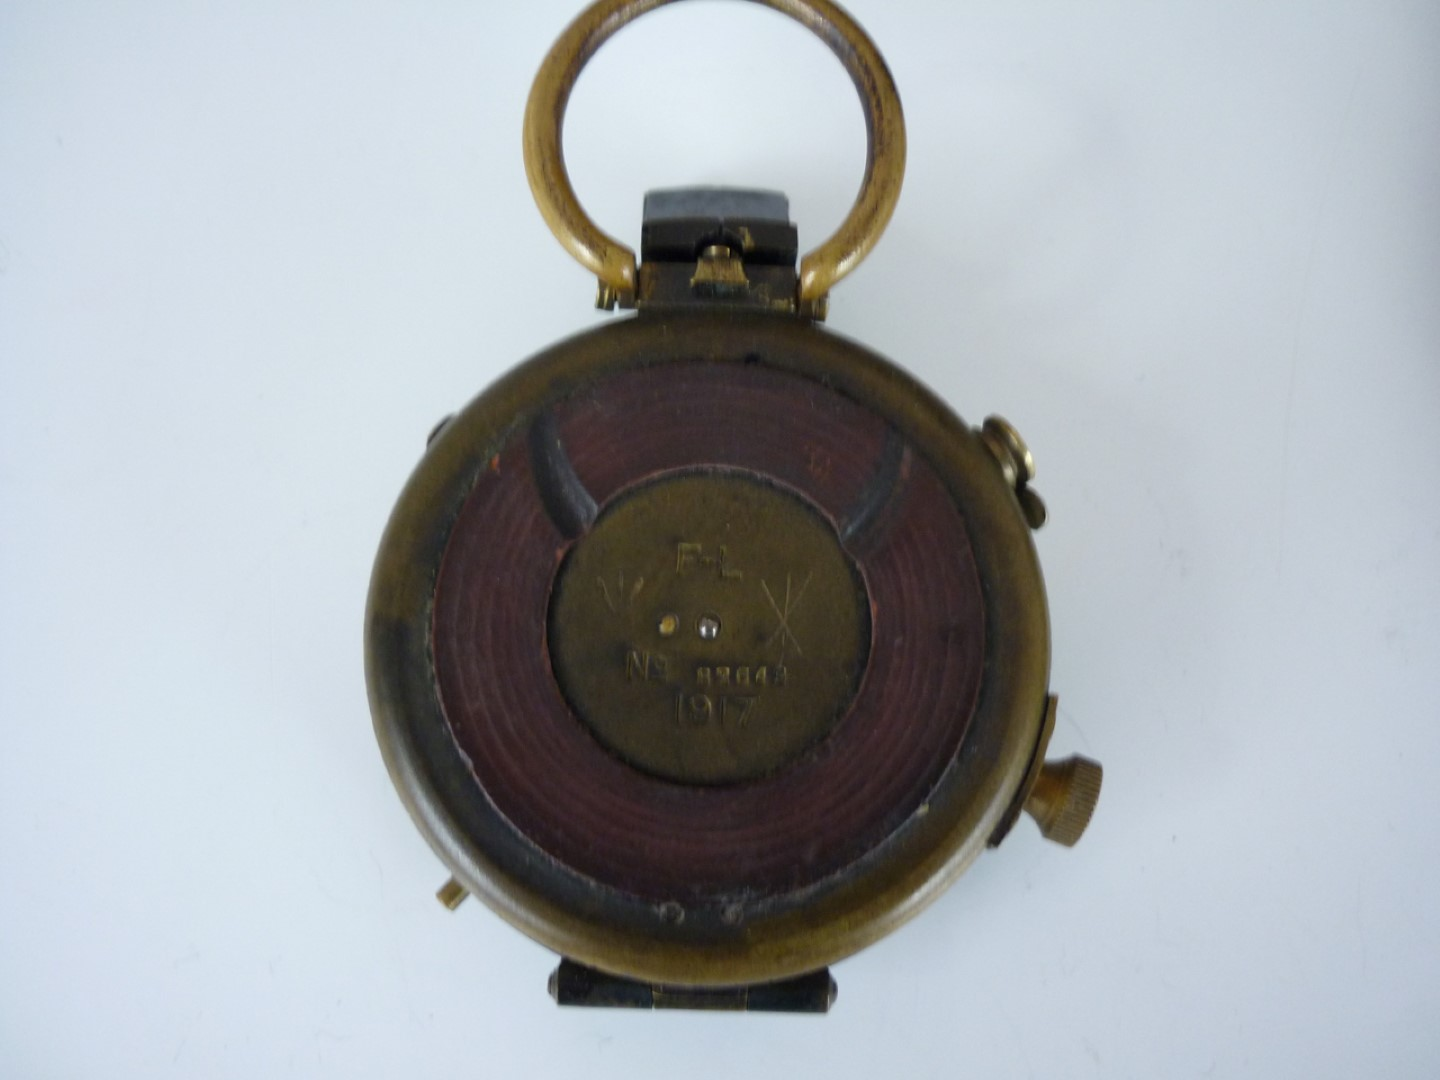 Lot 73 - A 1917 British Army issue Verner's Pattern prismatic marching compass in leather case